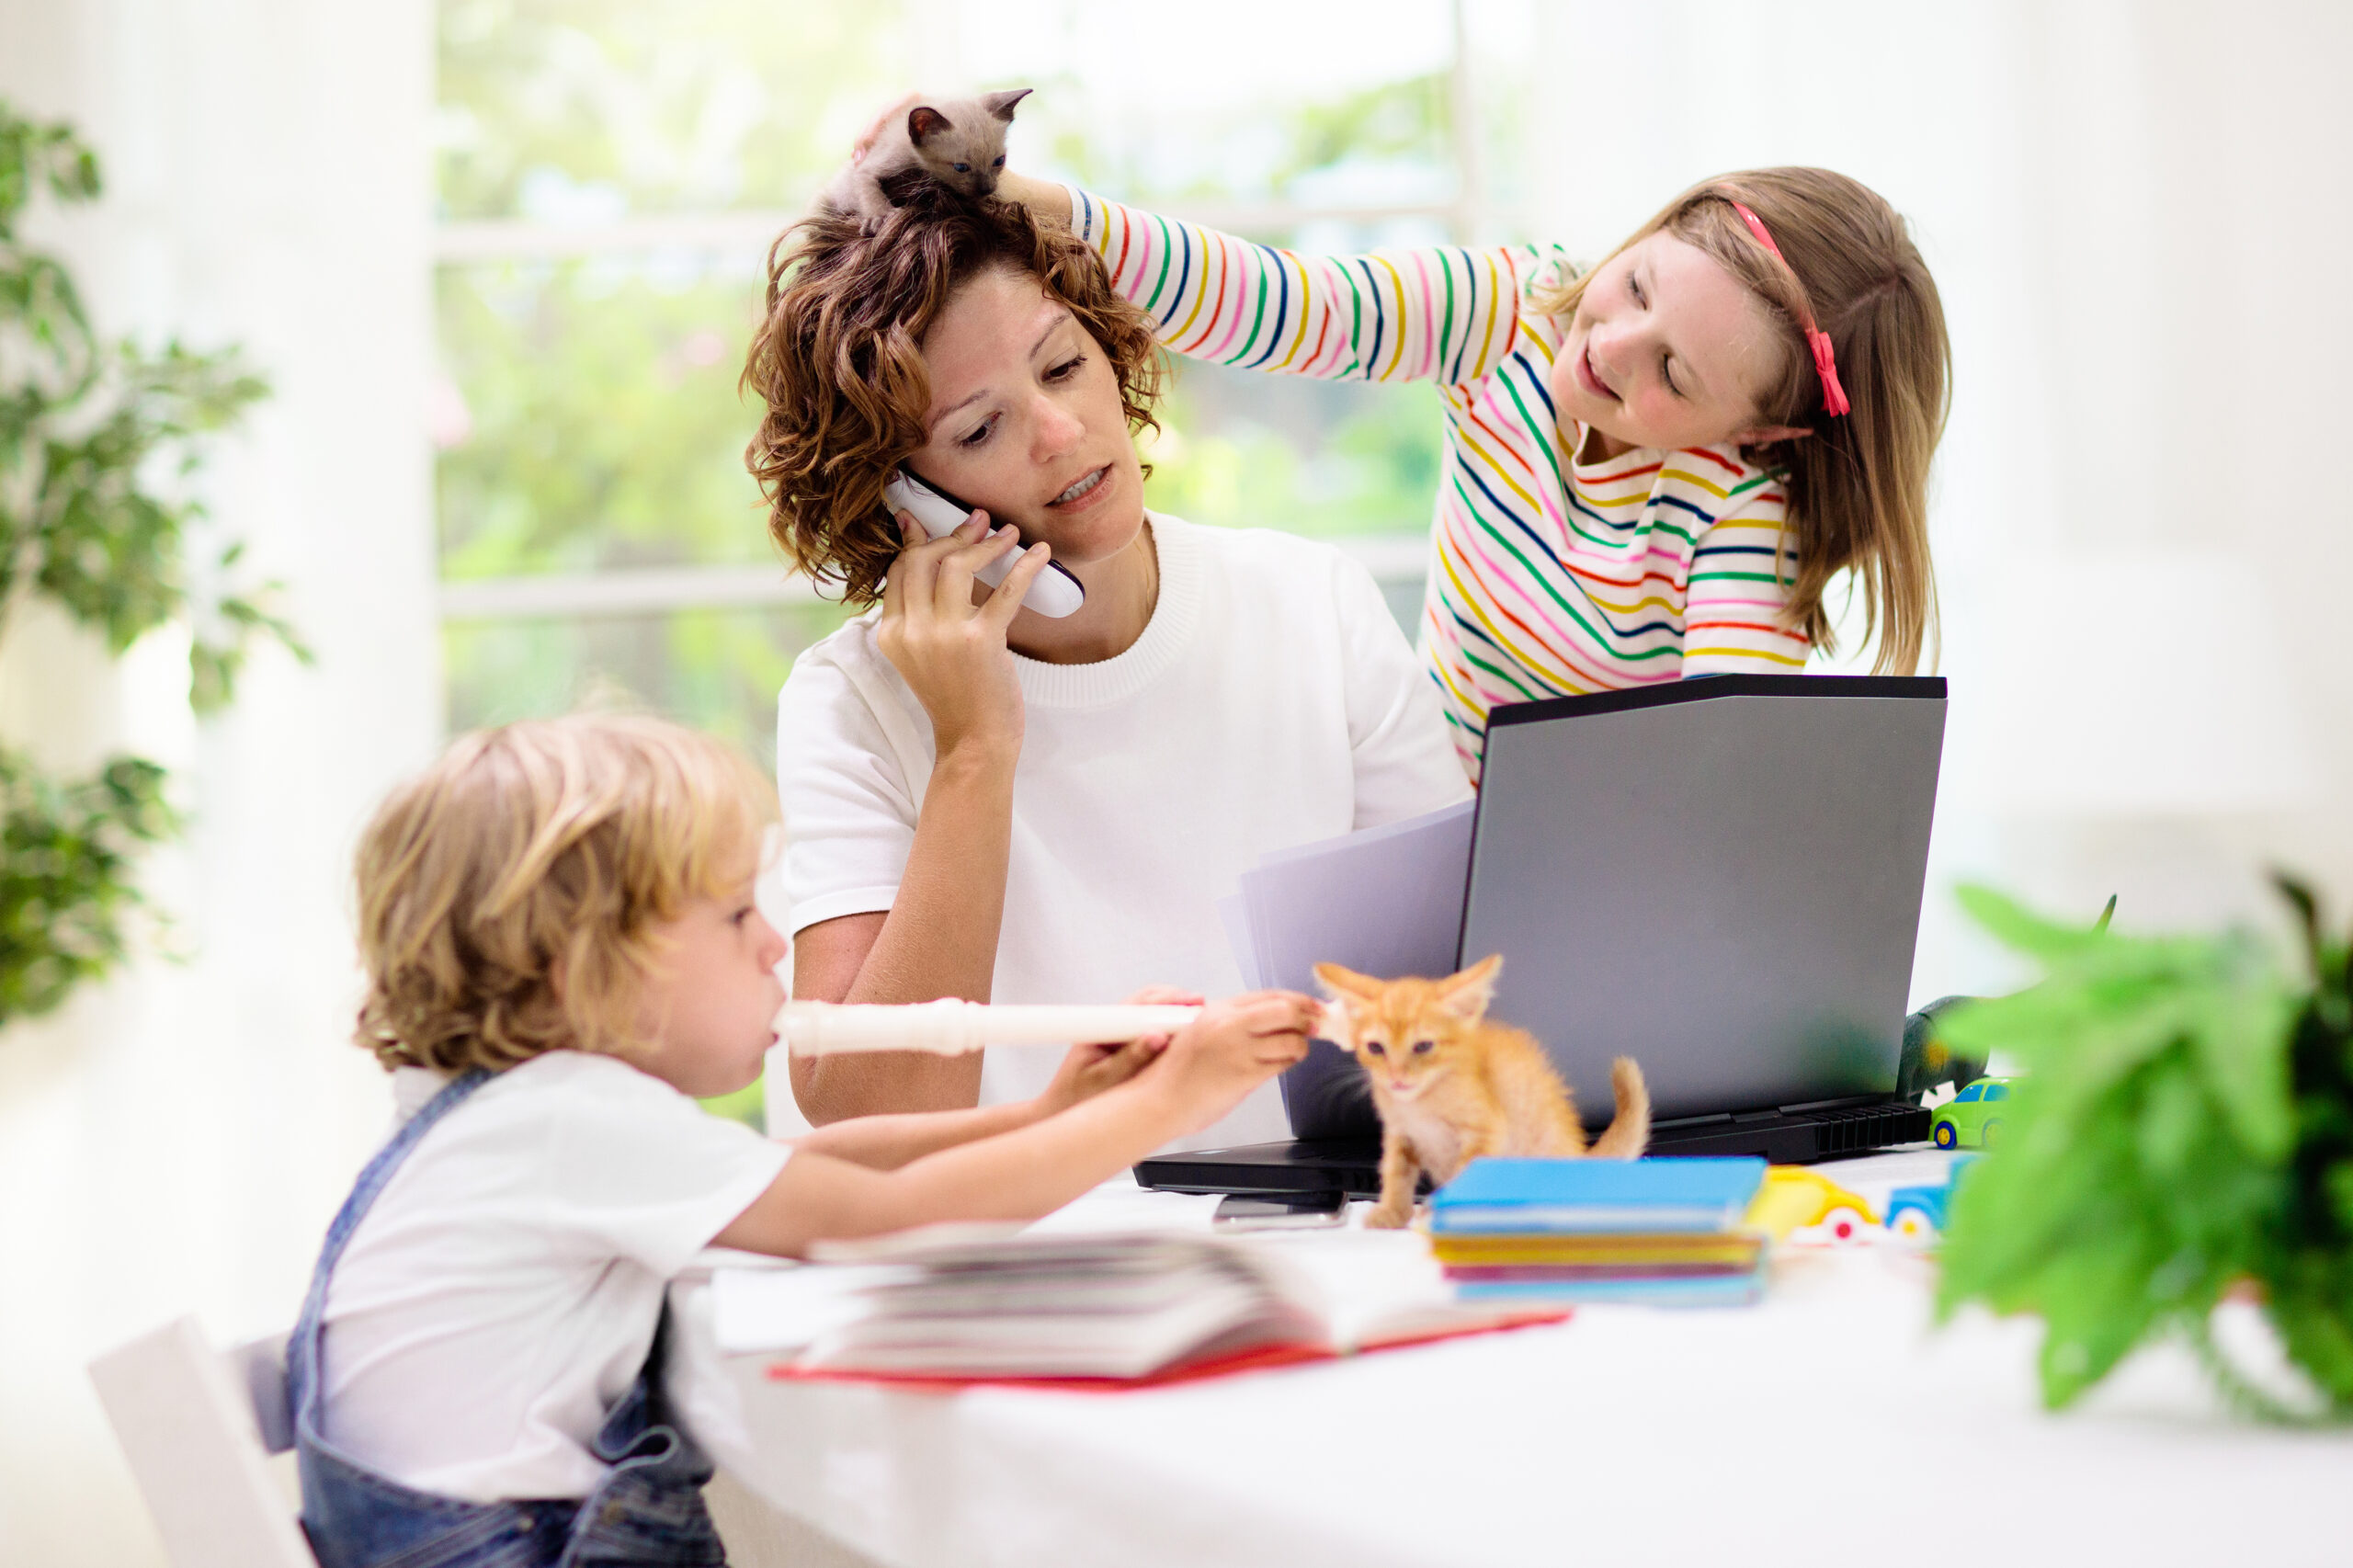 Home learning environment- studying at home